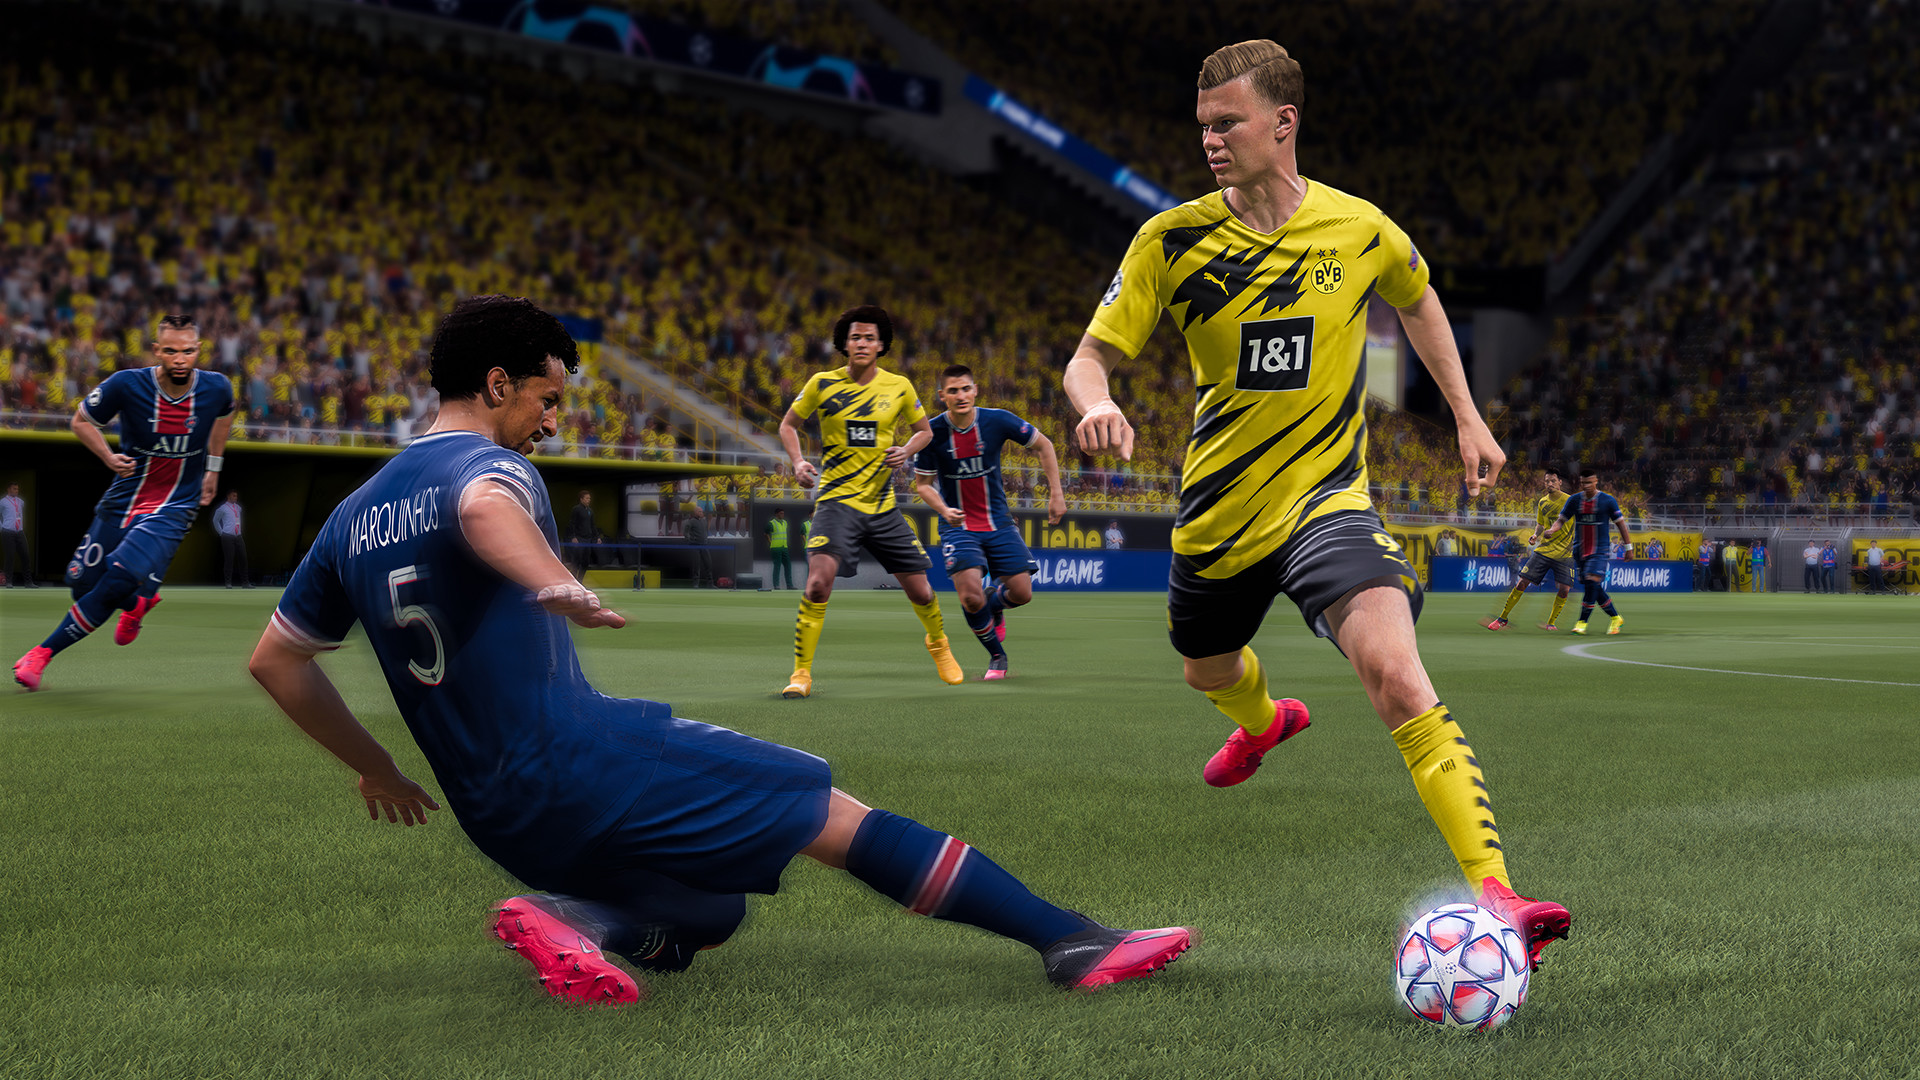 FIFA 21 Ultimate Edition (Electronic Arts) (RUS|ENG|MULTi) [OriginRip] by vano_next